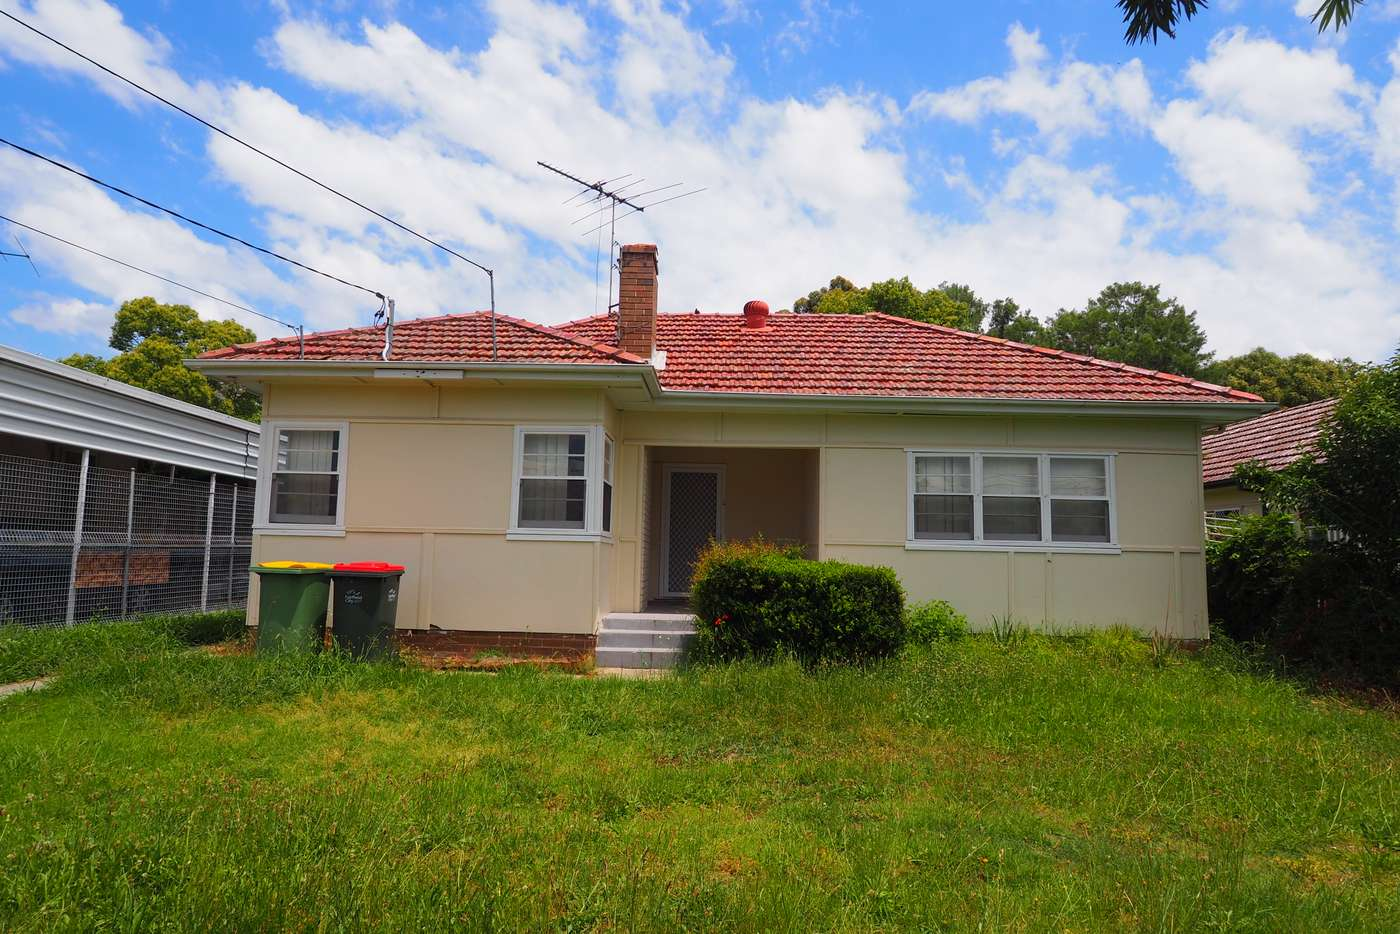 Main view of Homely house listing, 48 Curtin Street, Cabramatta NSW 2166